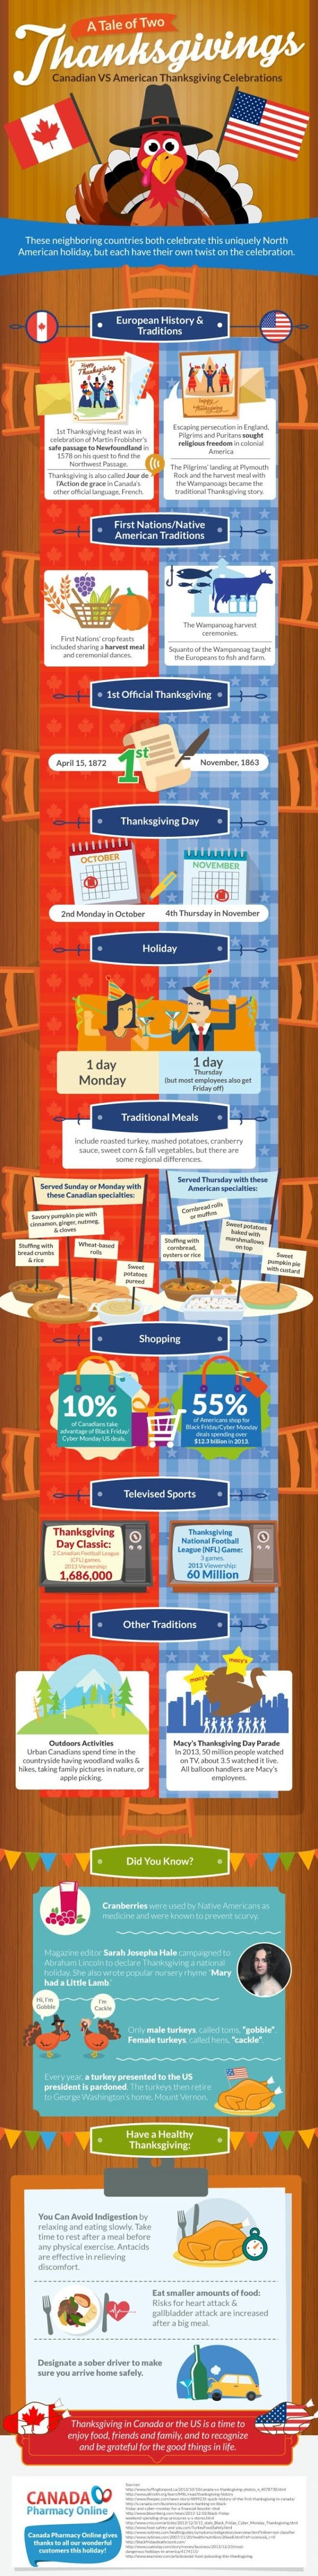 A Tale of Two Thanksgivings: Canadian VS American Thanksgiving Celebrations #infographic